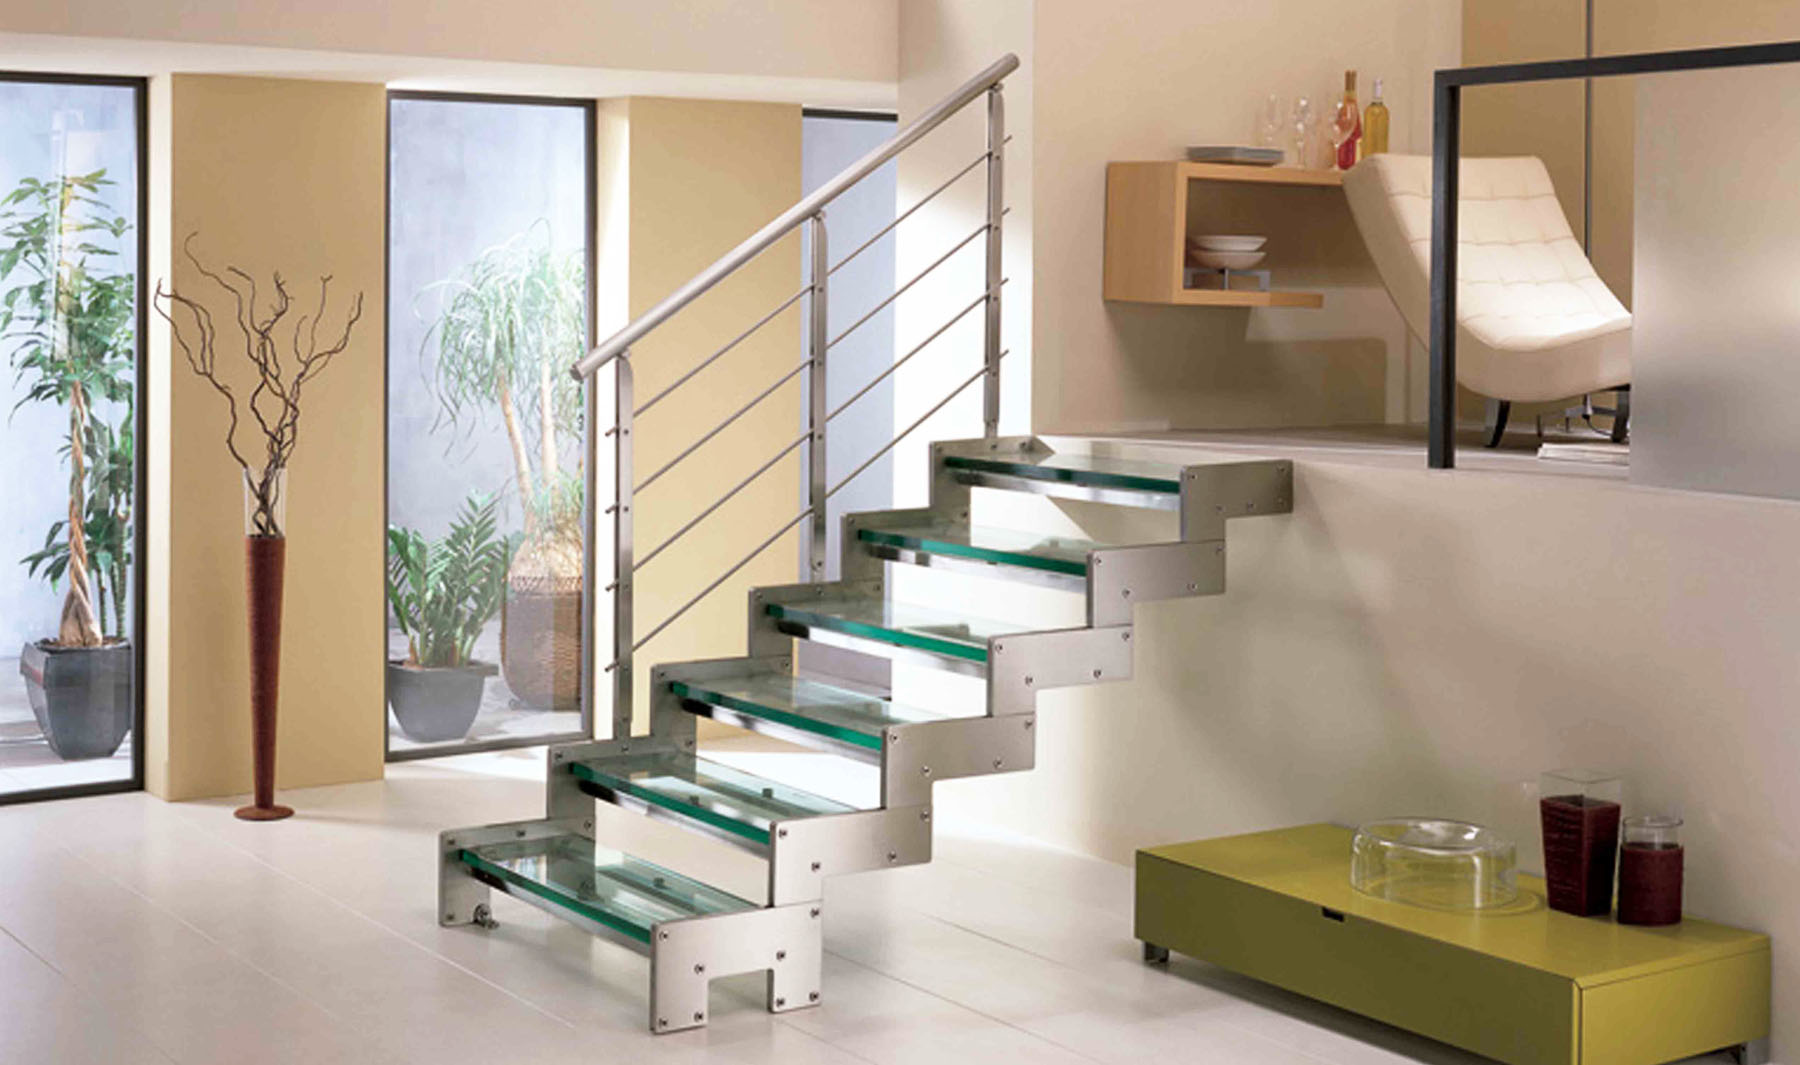 Escaleras construcci n reformas decoraci n for Escaleras de salon